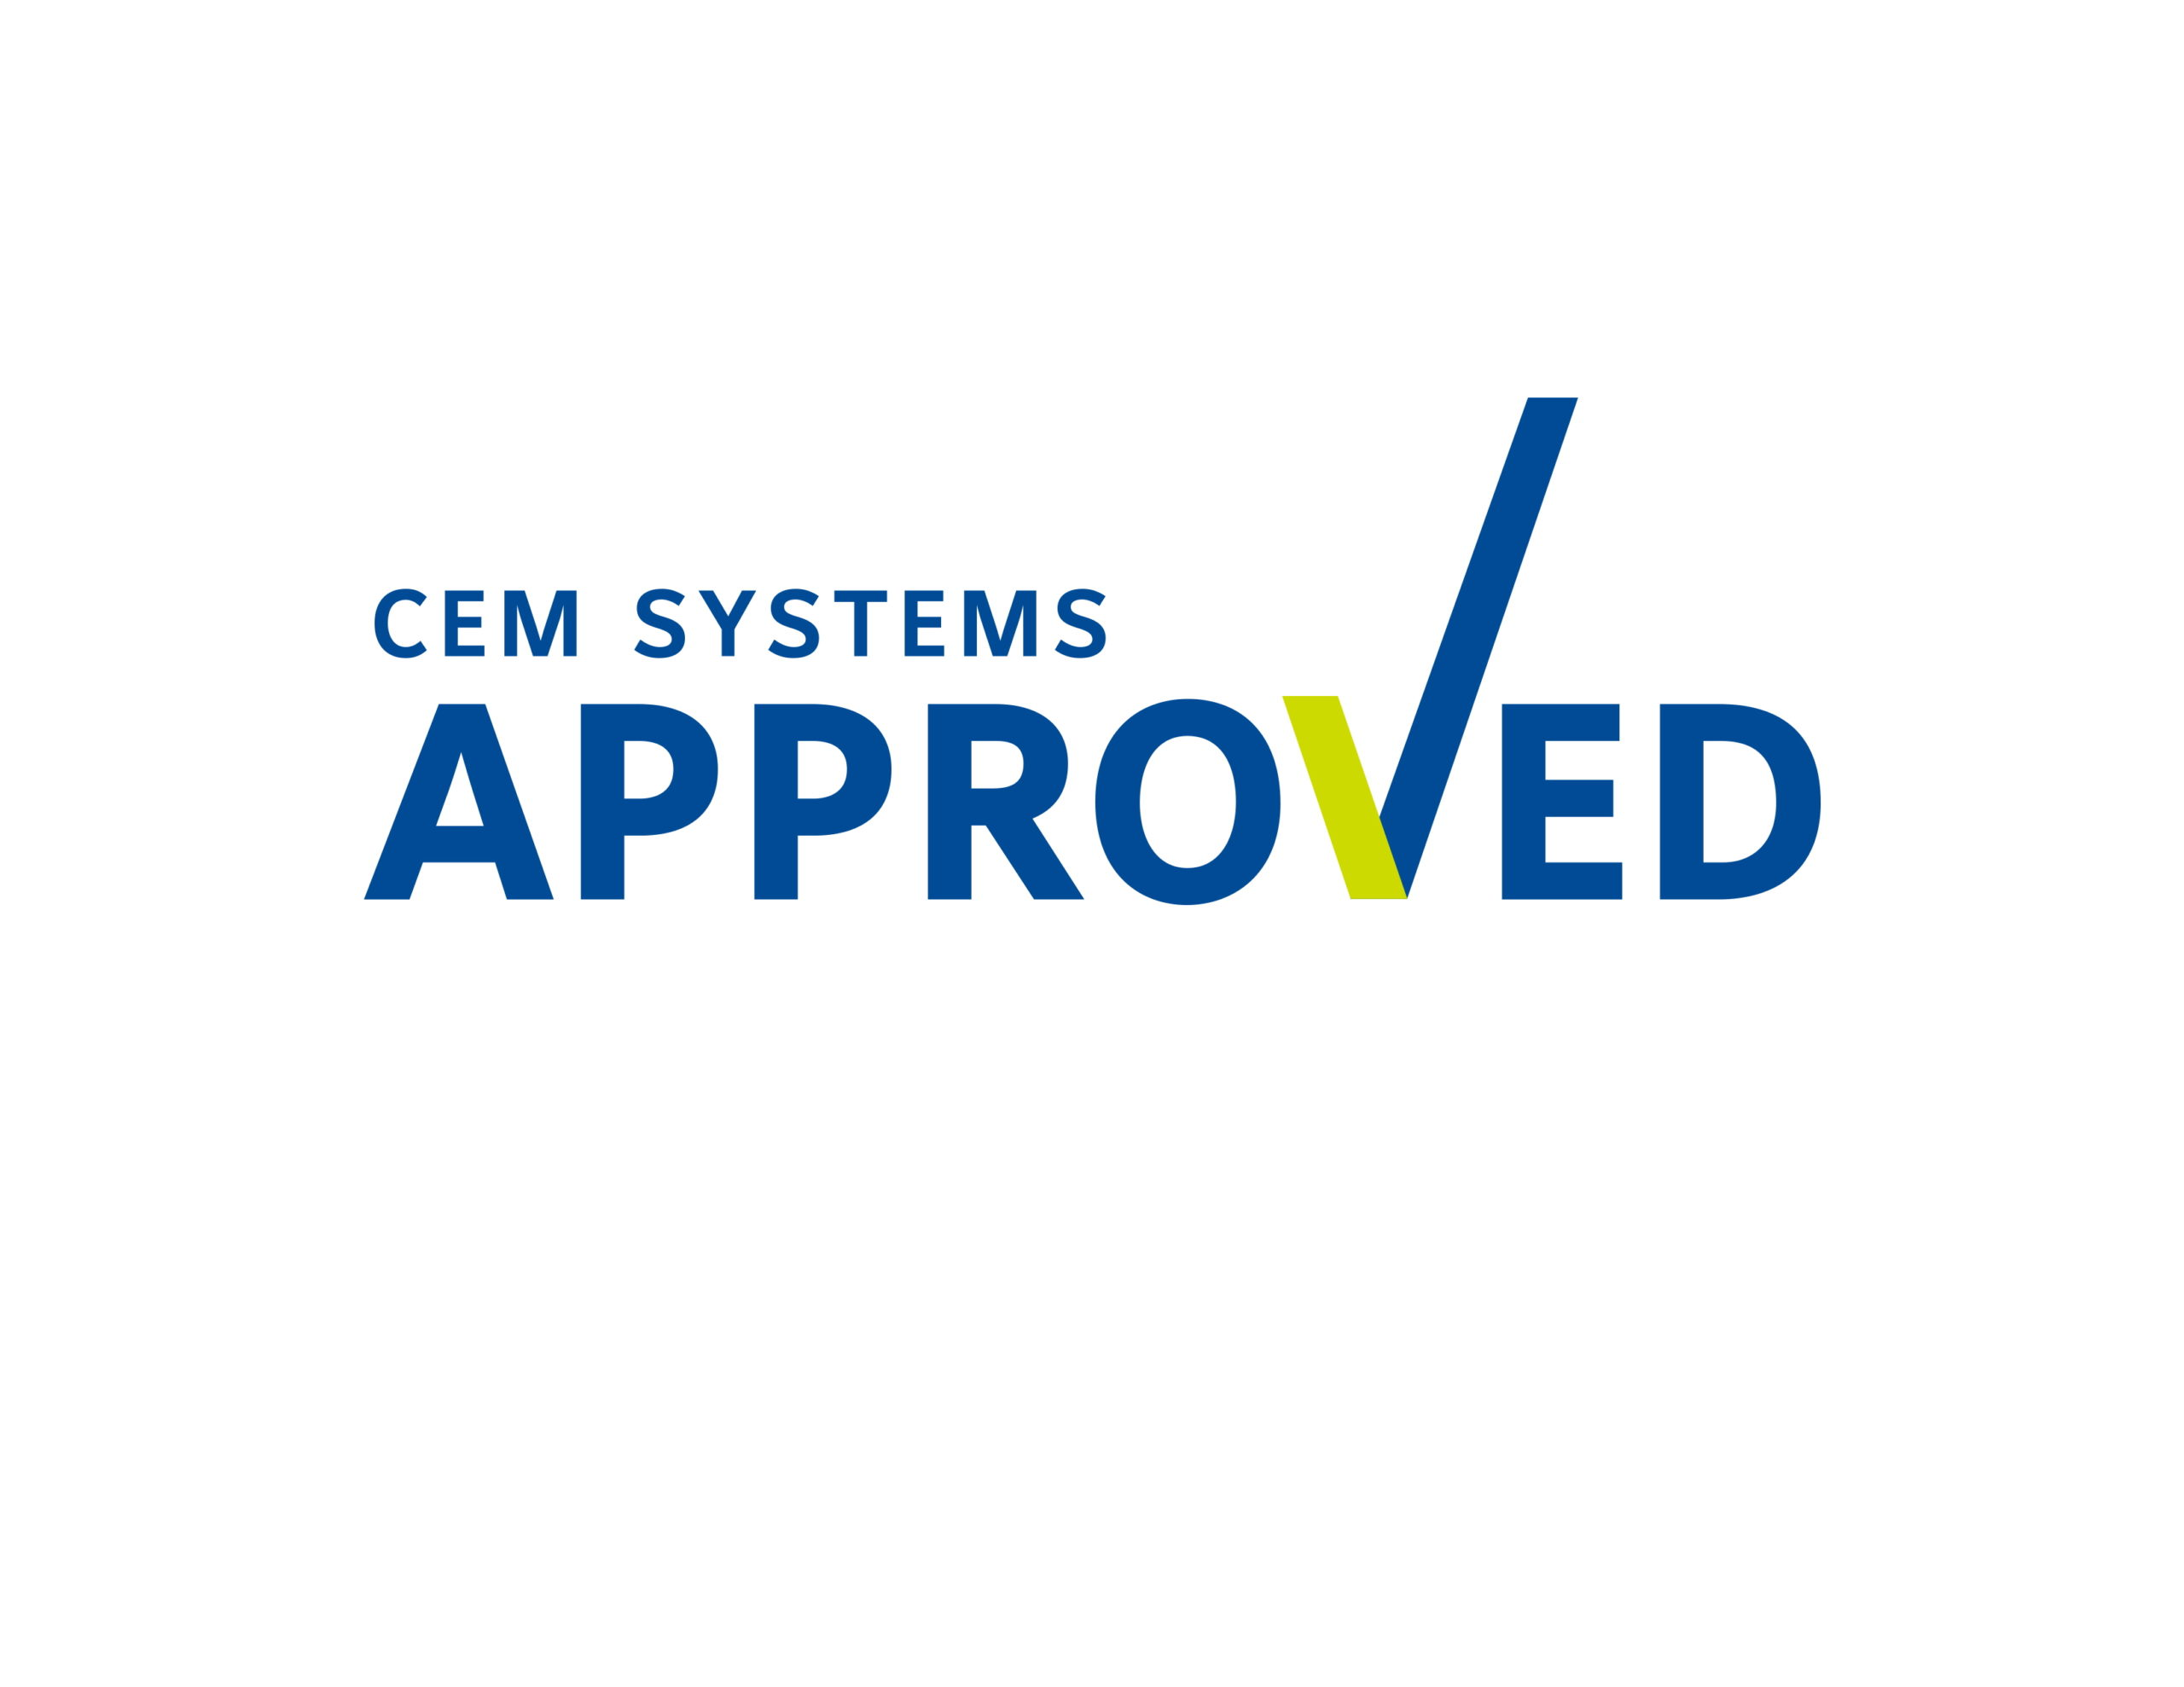 CEM Systems Approved logo